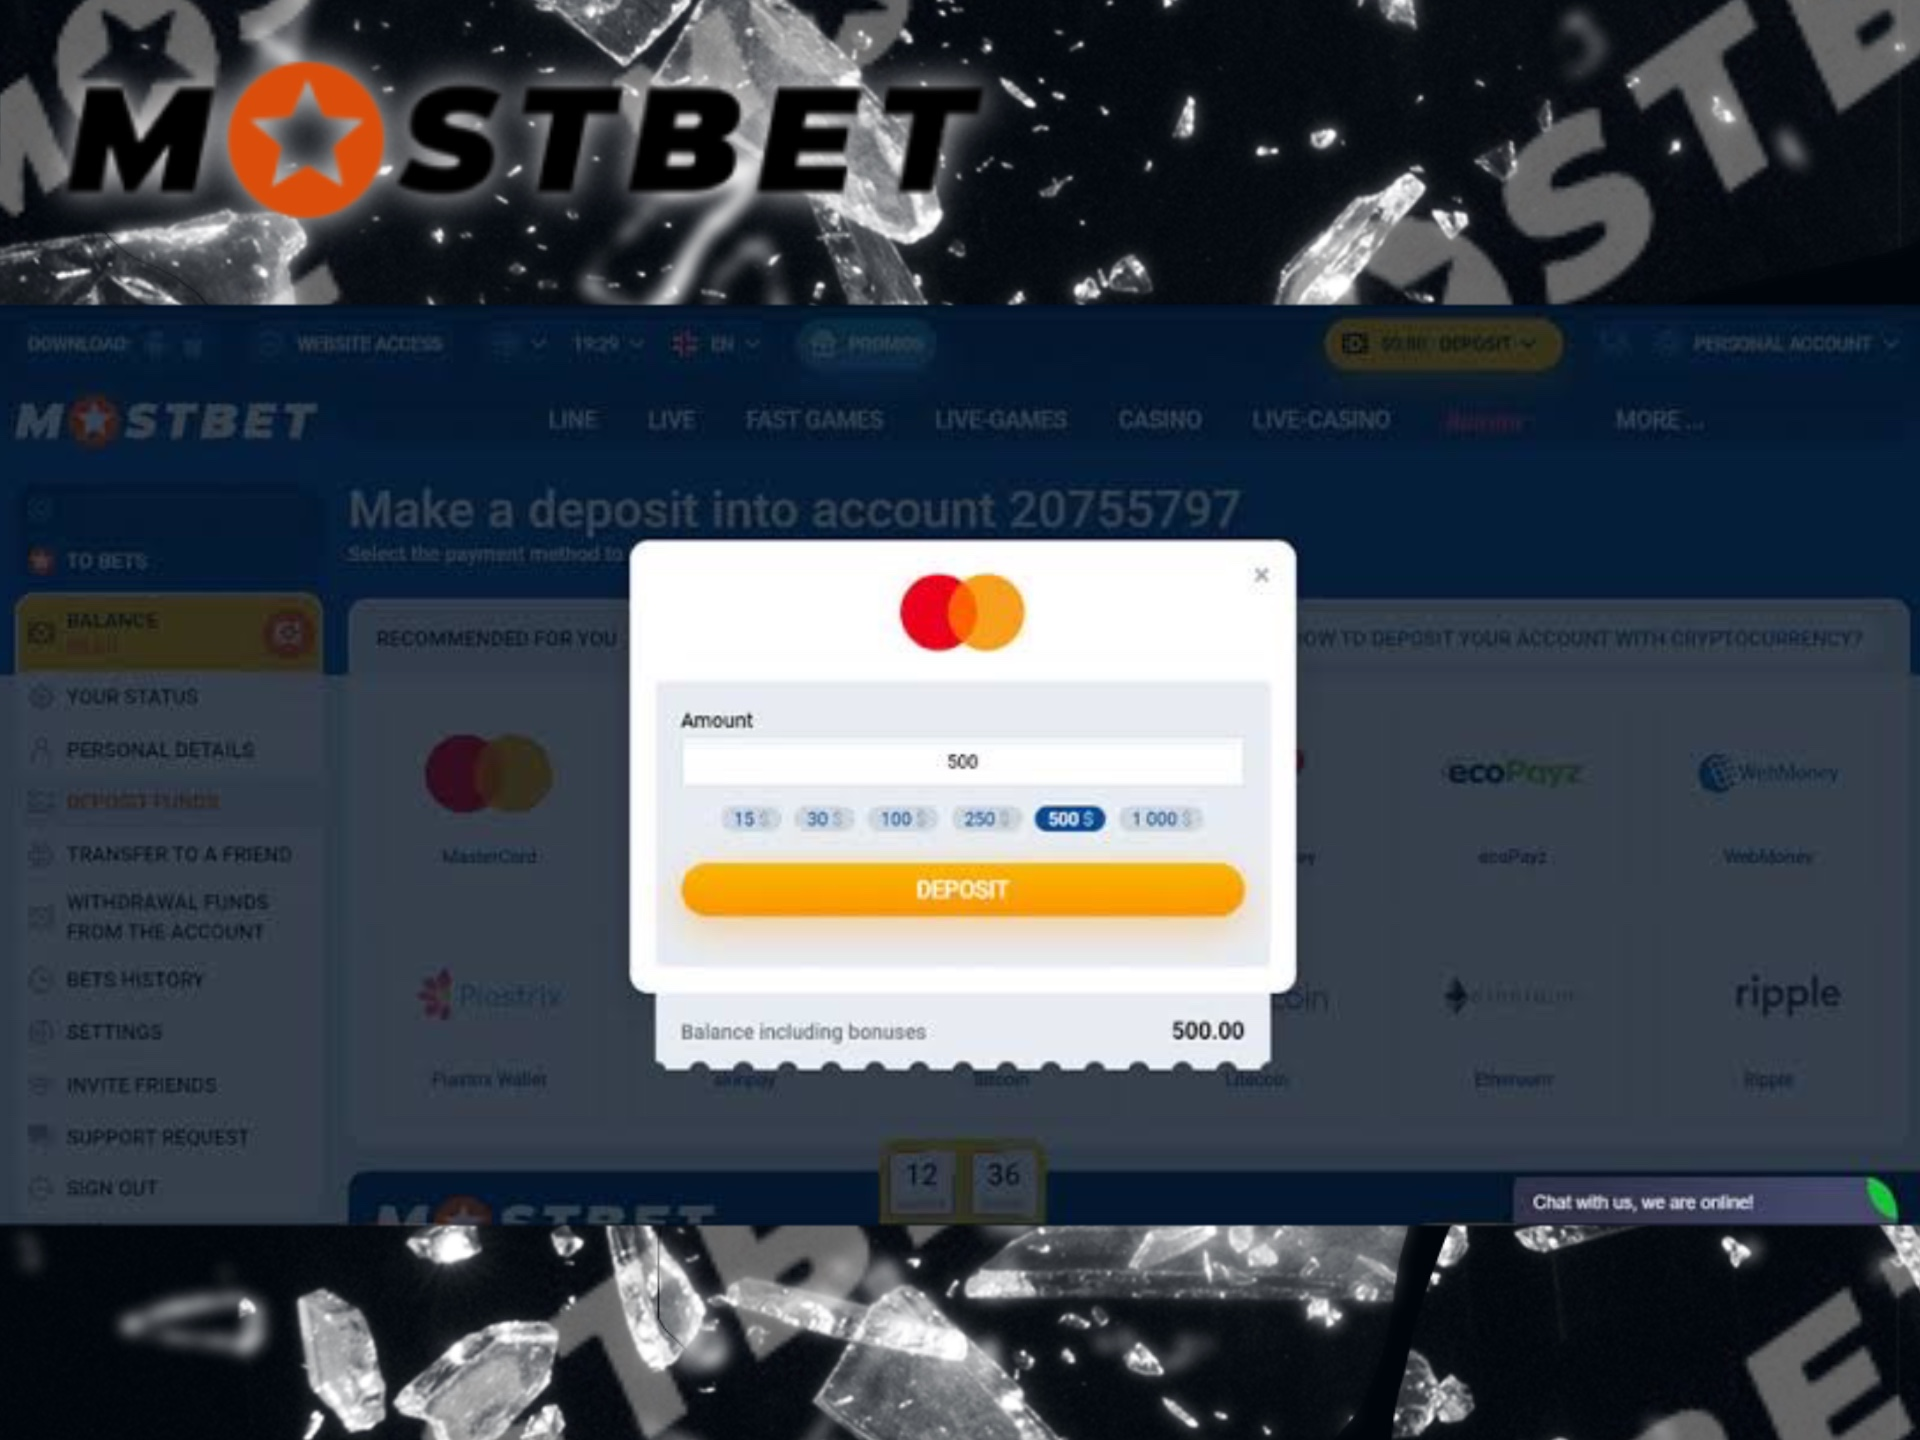 Mostbet makes almost immediate deposits via e-wallets.